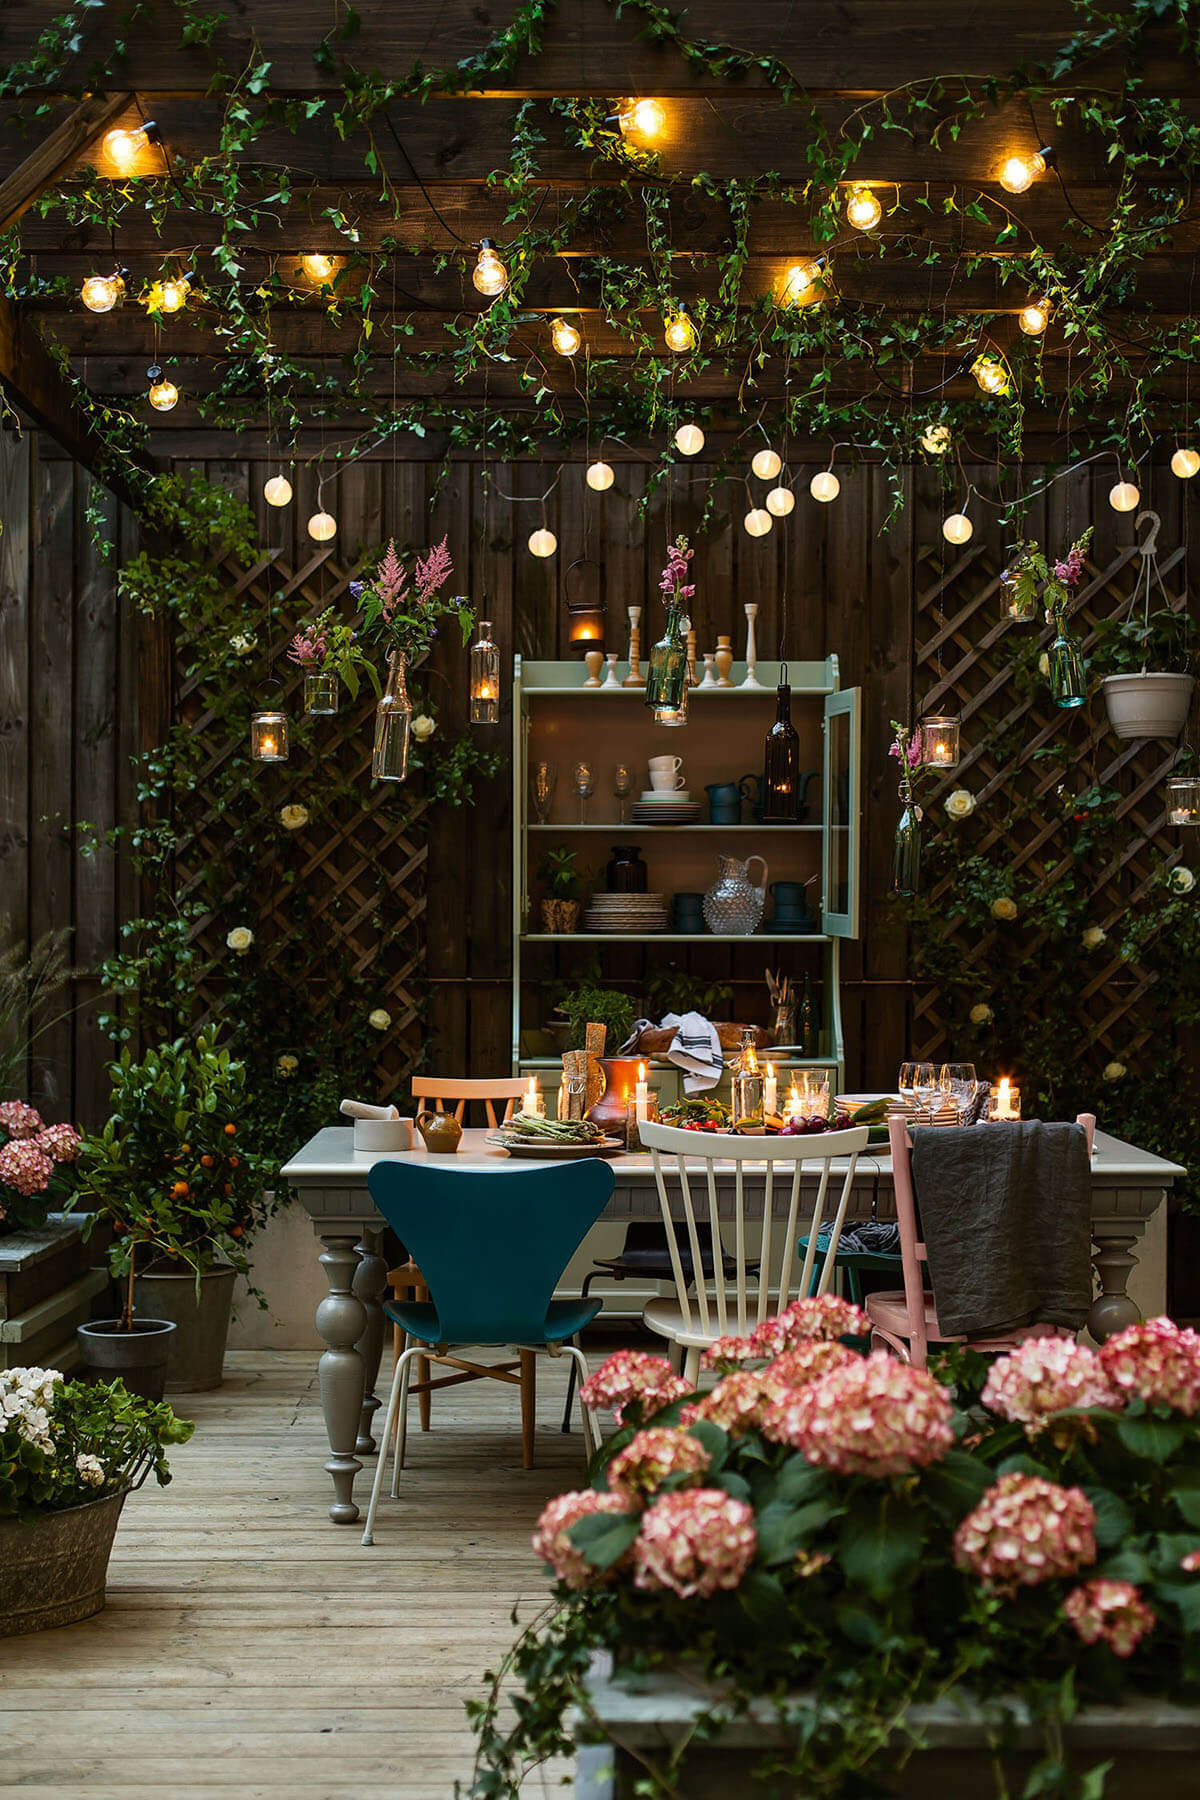 27 Best Backyard Lighting Ideas And Designs For 2019 with 11 Genius Tricks of How to Upgrade Backyard String Lights Ideas